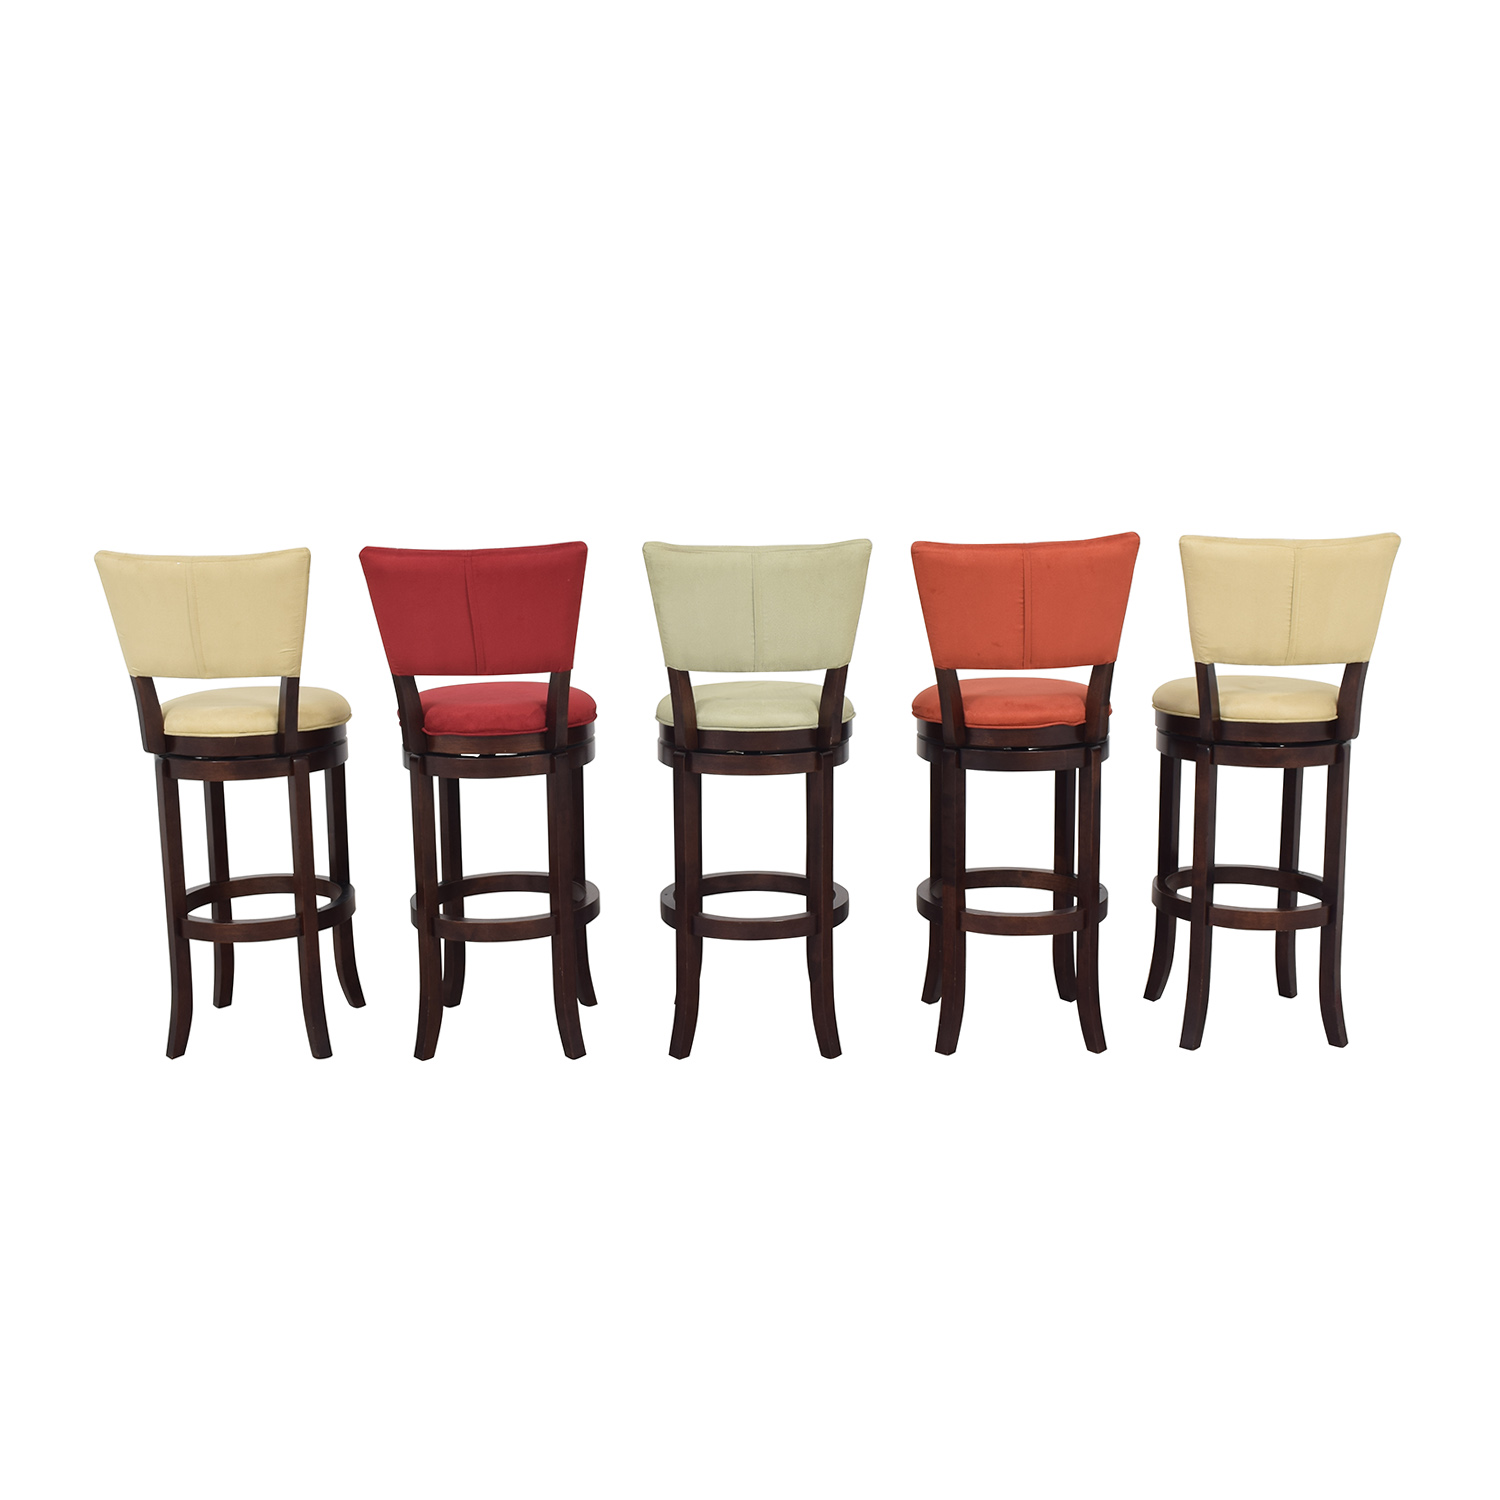 Rooms To Go Rooms To Go Keefer Bar Stools